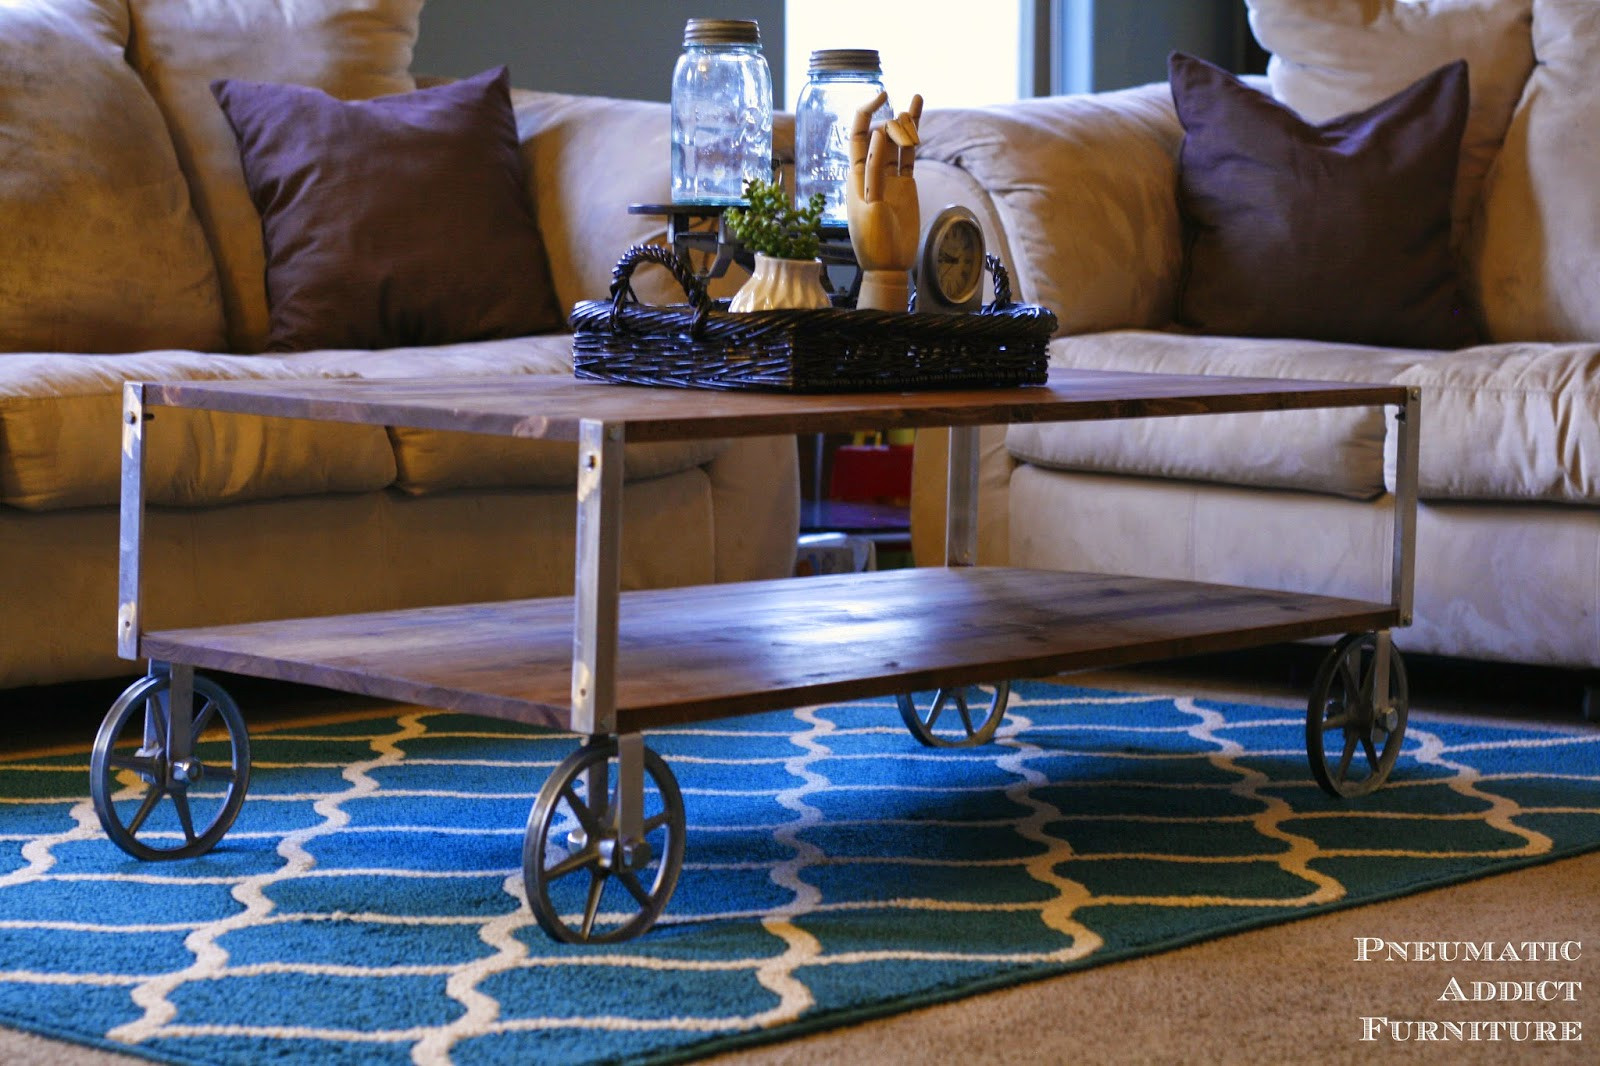 Best ideas about DIY Industrial Table . Save or Pin EASY Industrial Coffee Table No Welding Now.